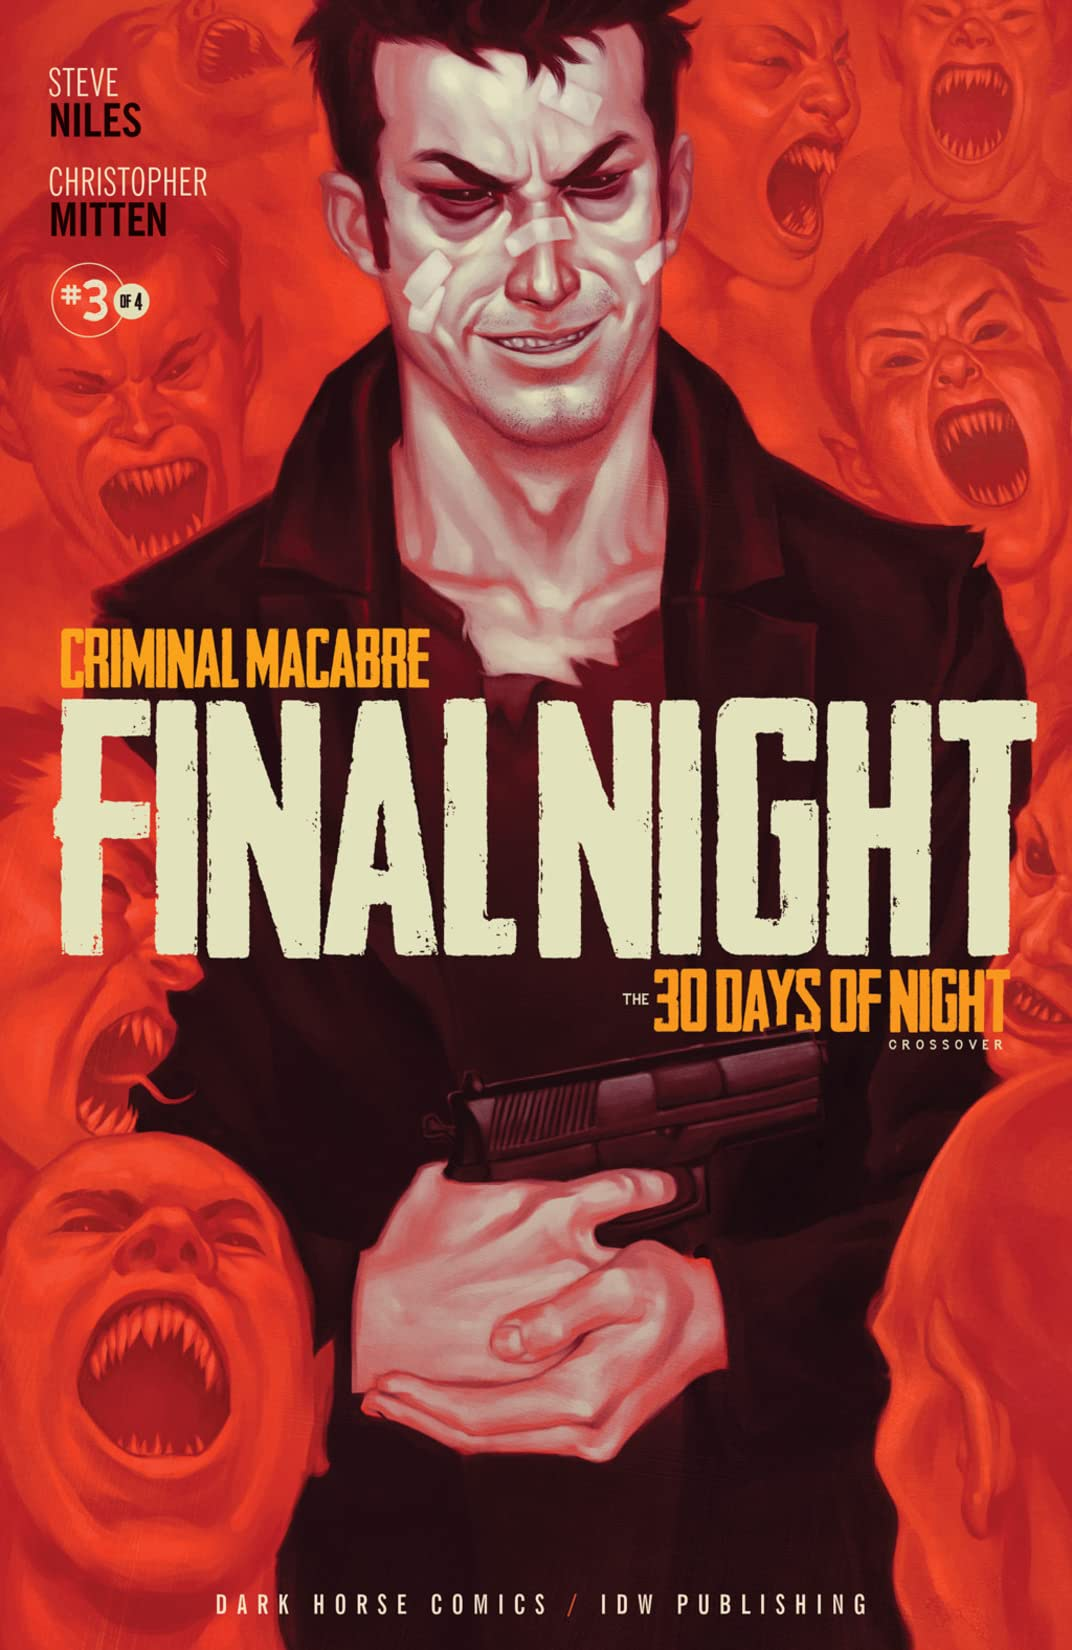 Criminal Macabre: Final Night - The 30 Days of Night Crossover #3